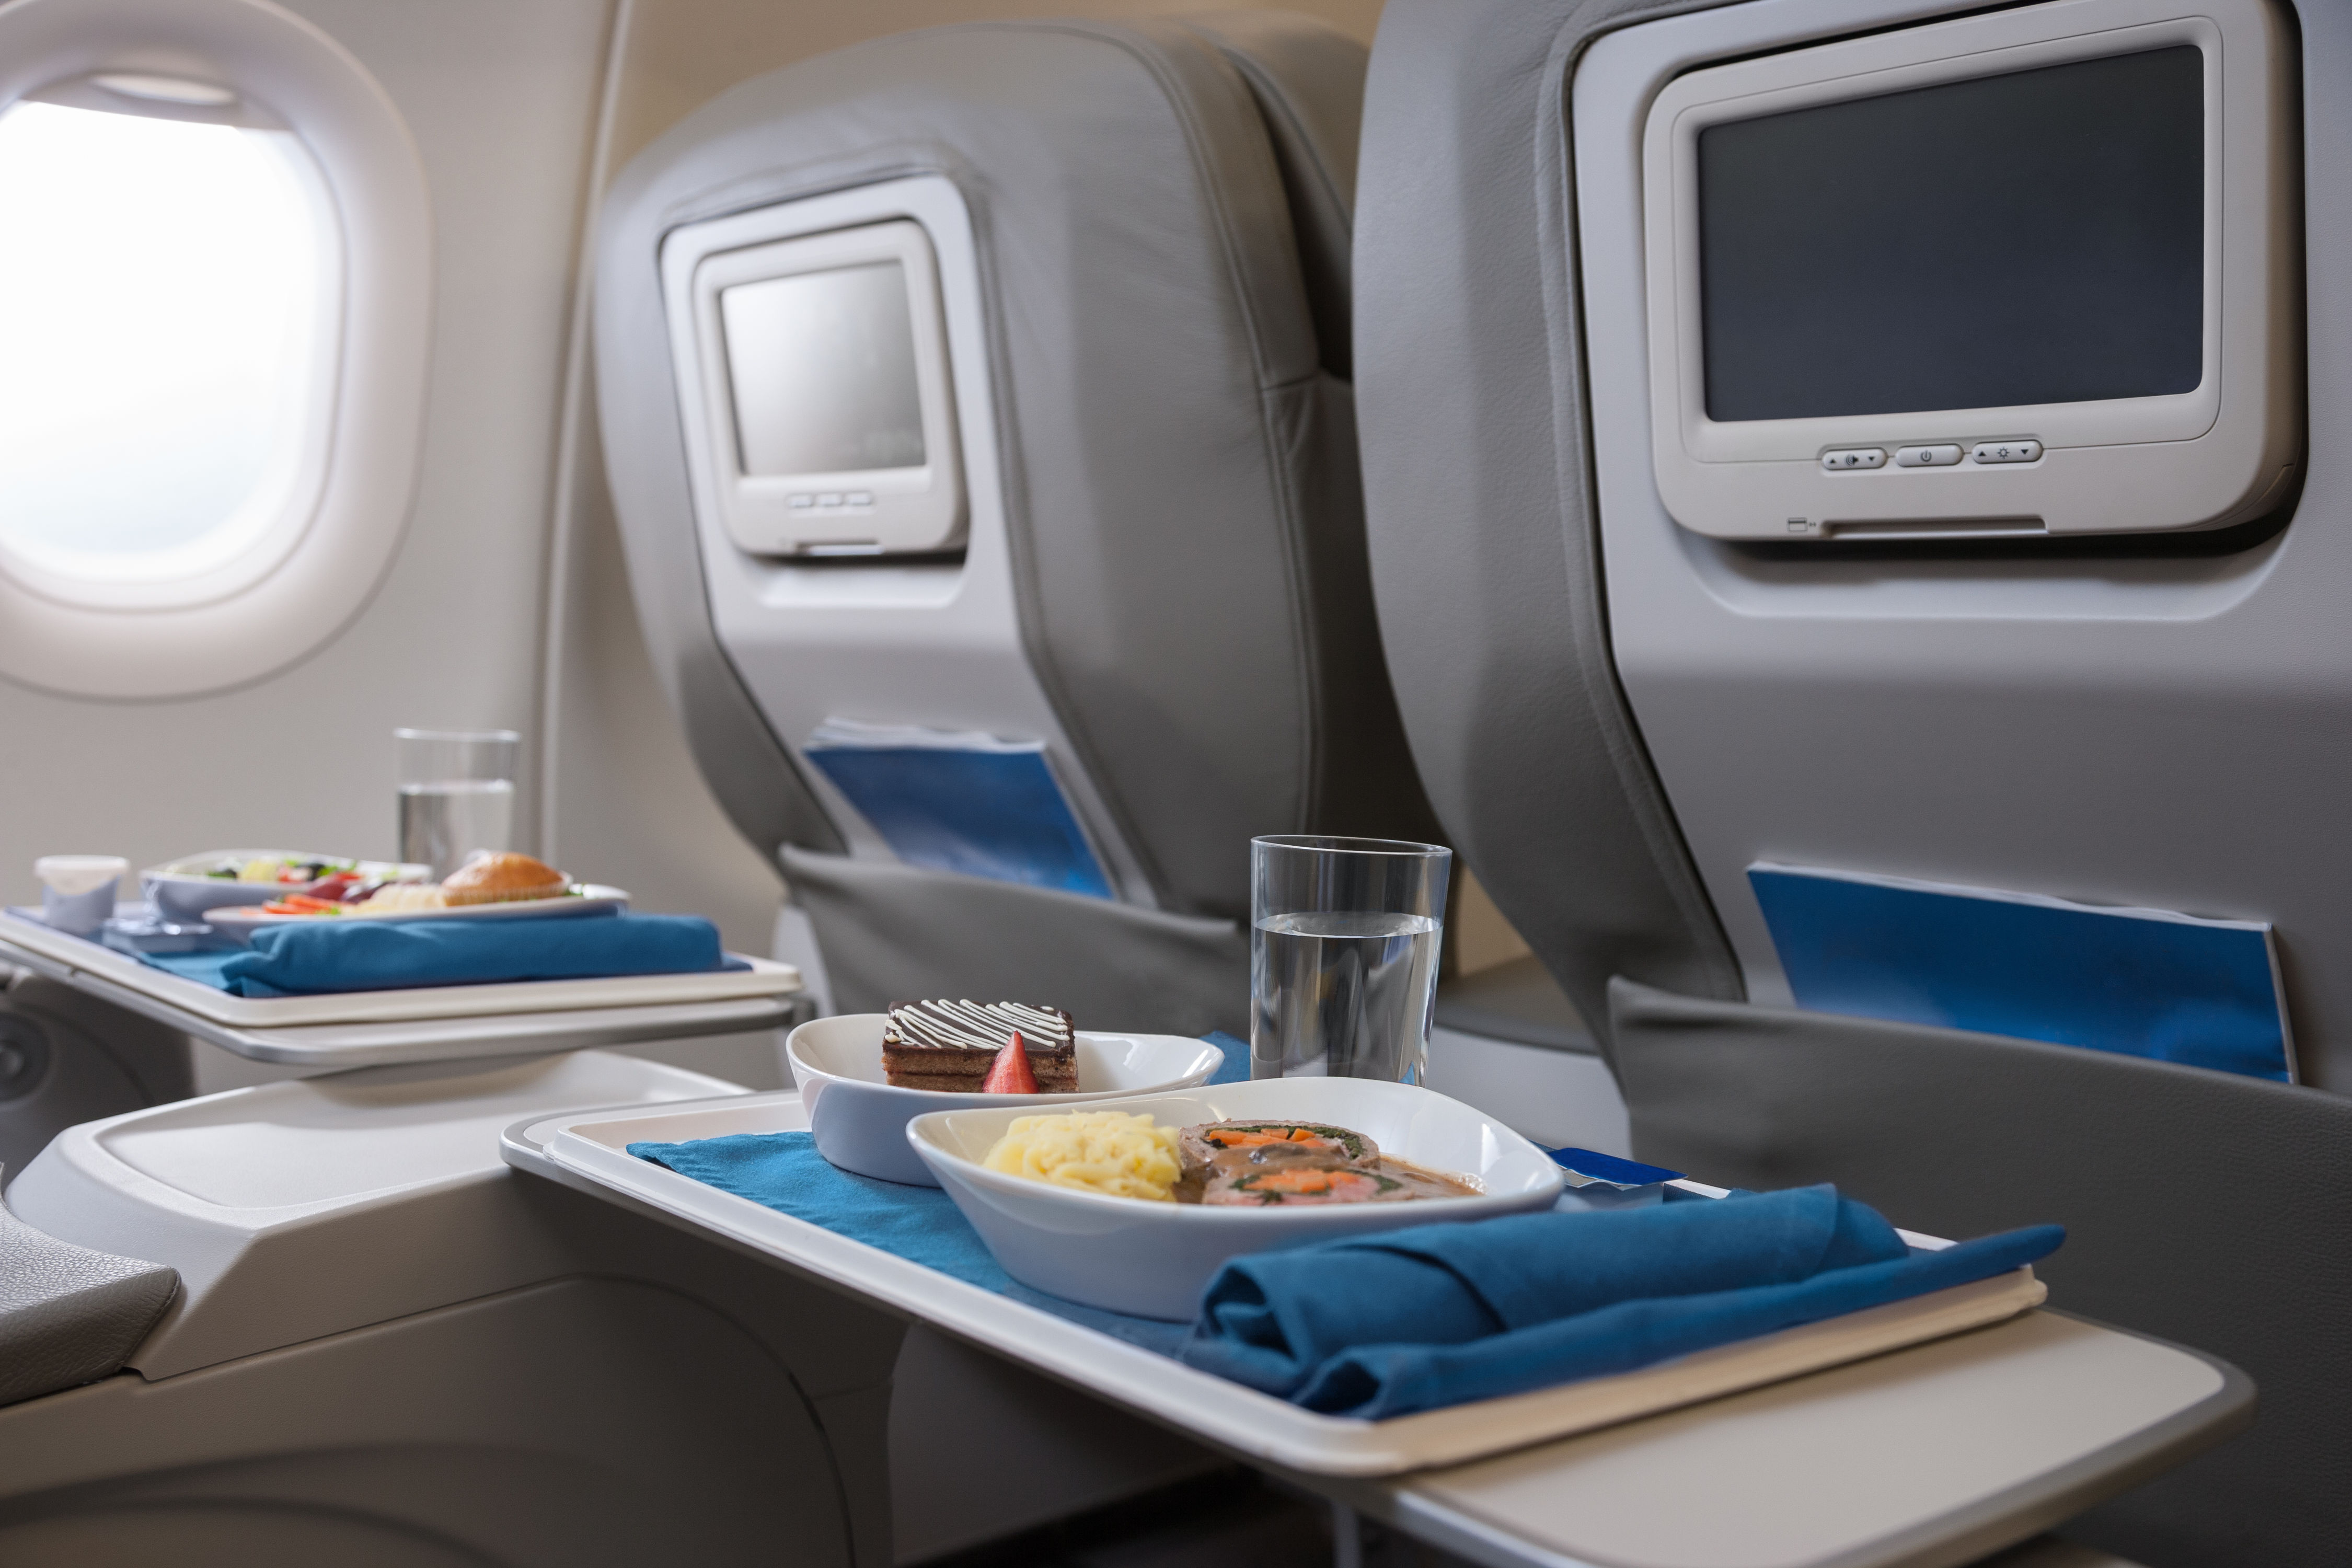 Why You Should Never Eat Food on Planes, According to the Experts